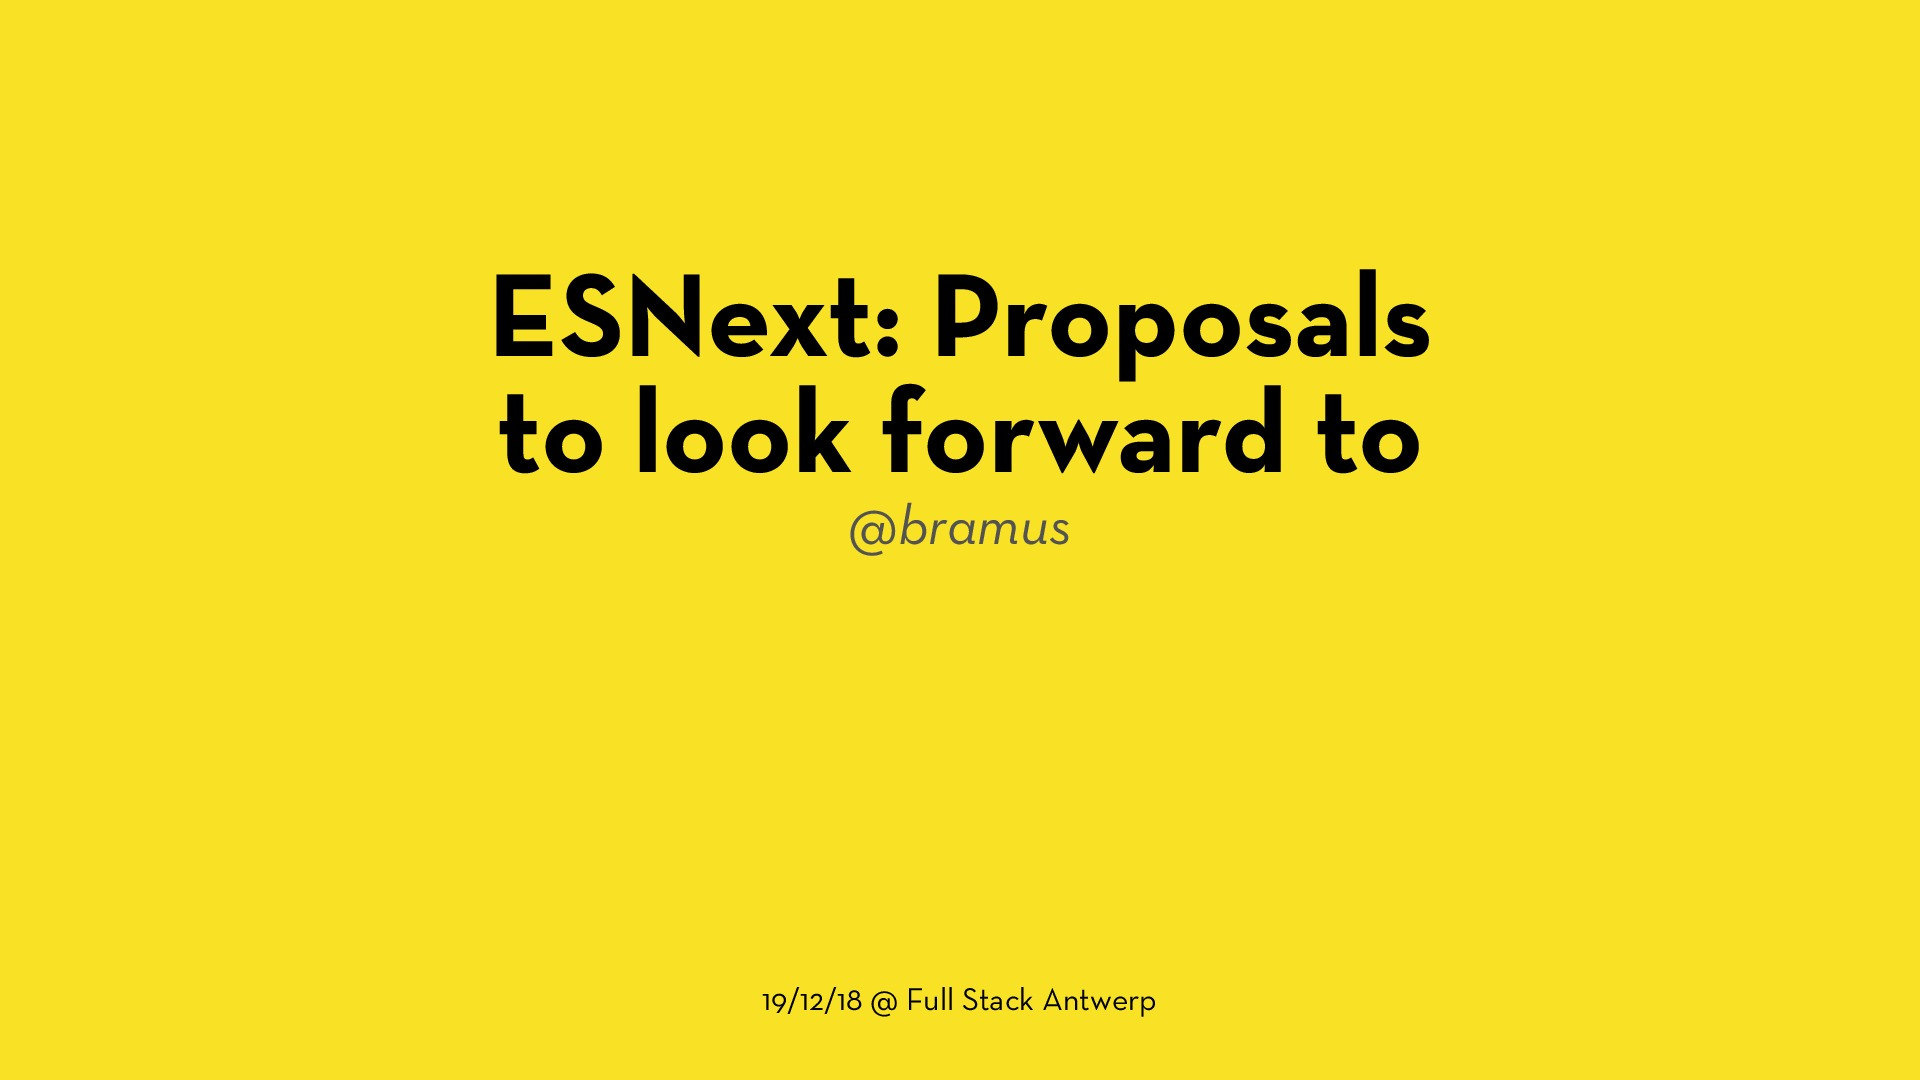 ESNext: Proposals to look forward to (2018.12.19 @ Full Stack Antwerp)